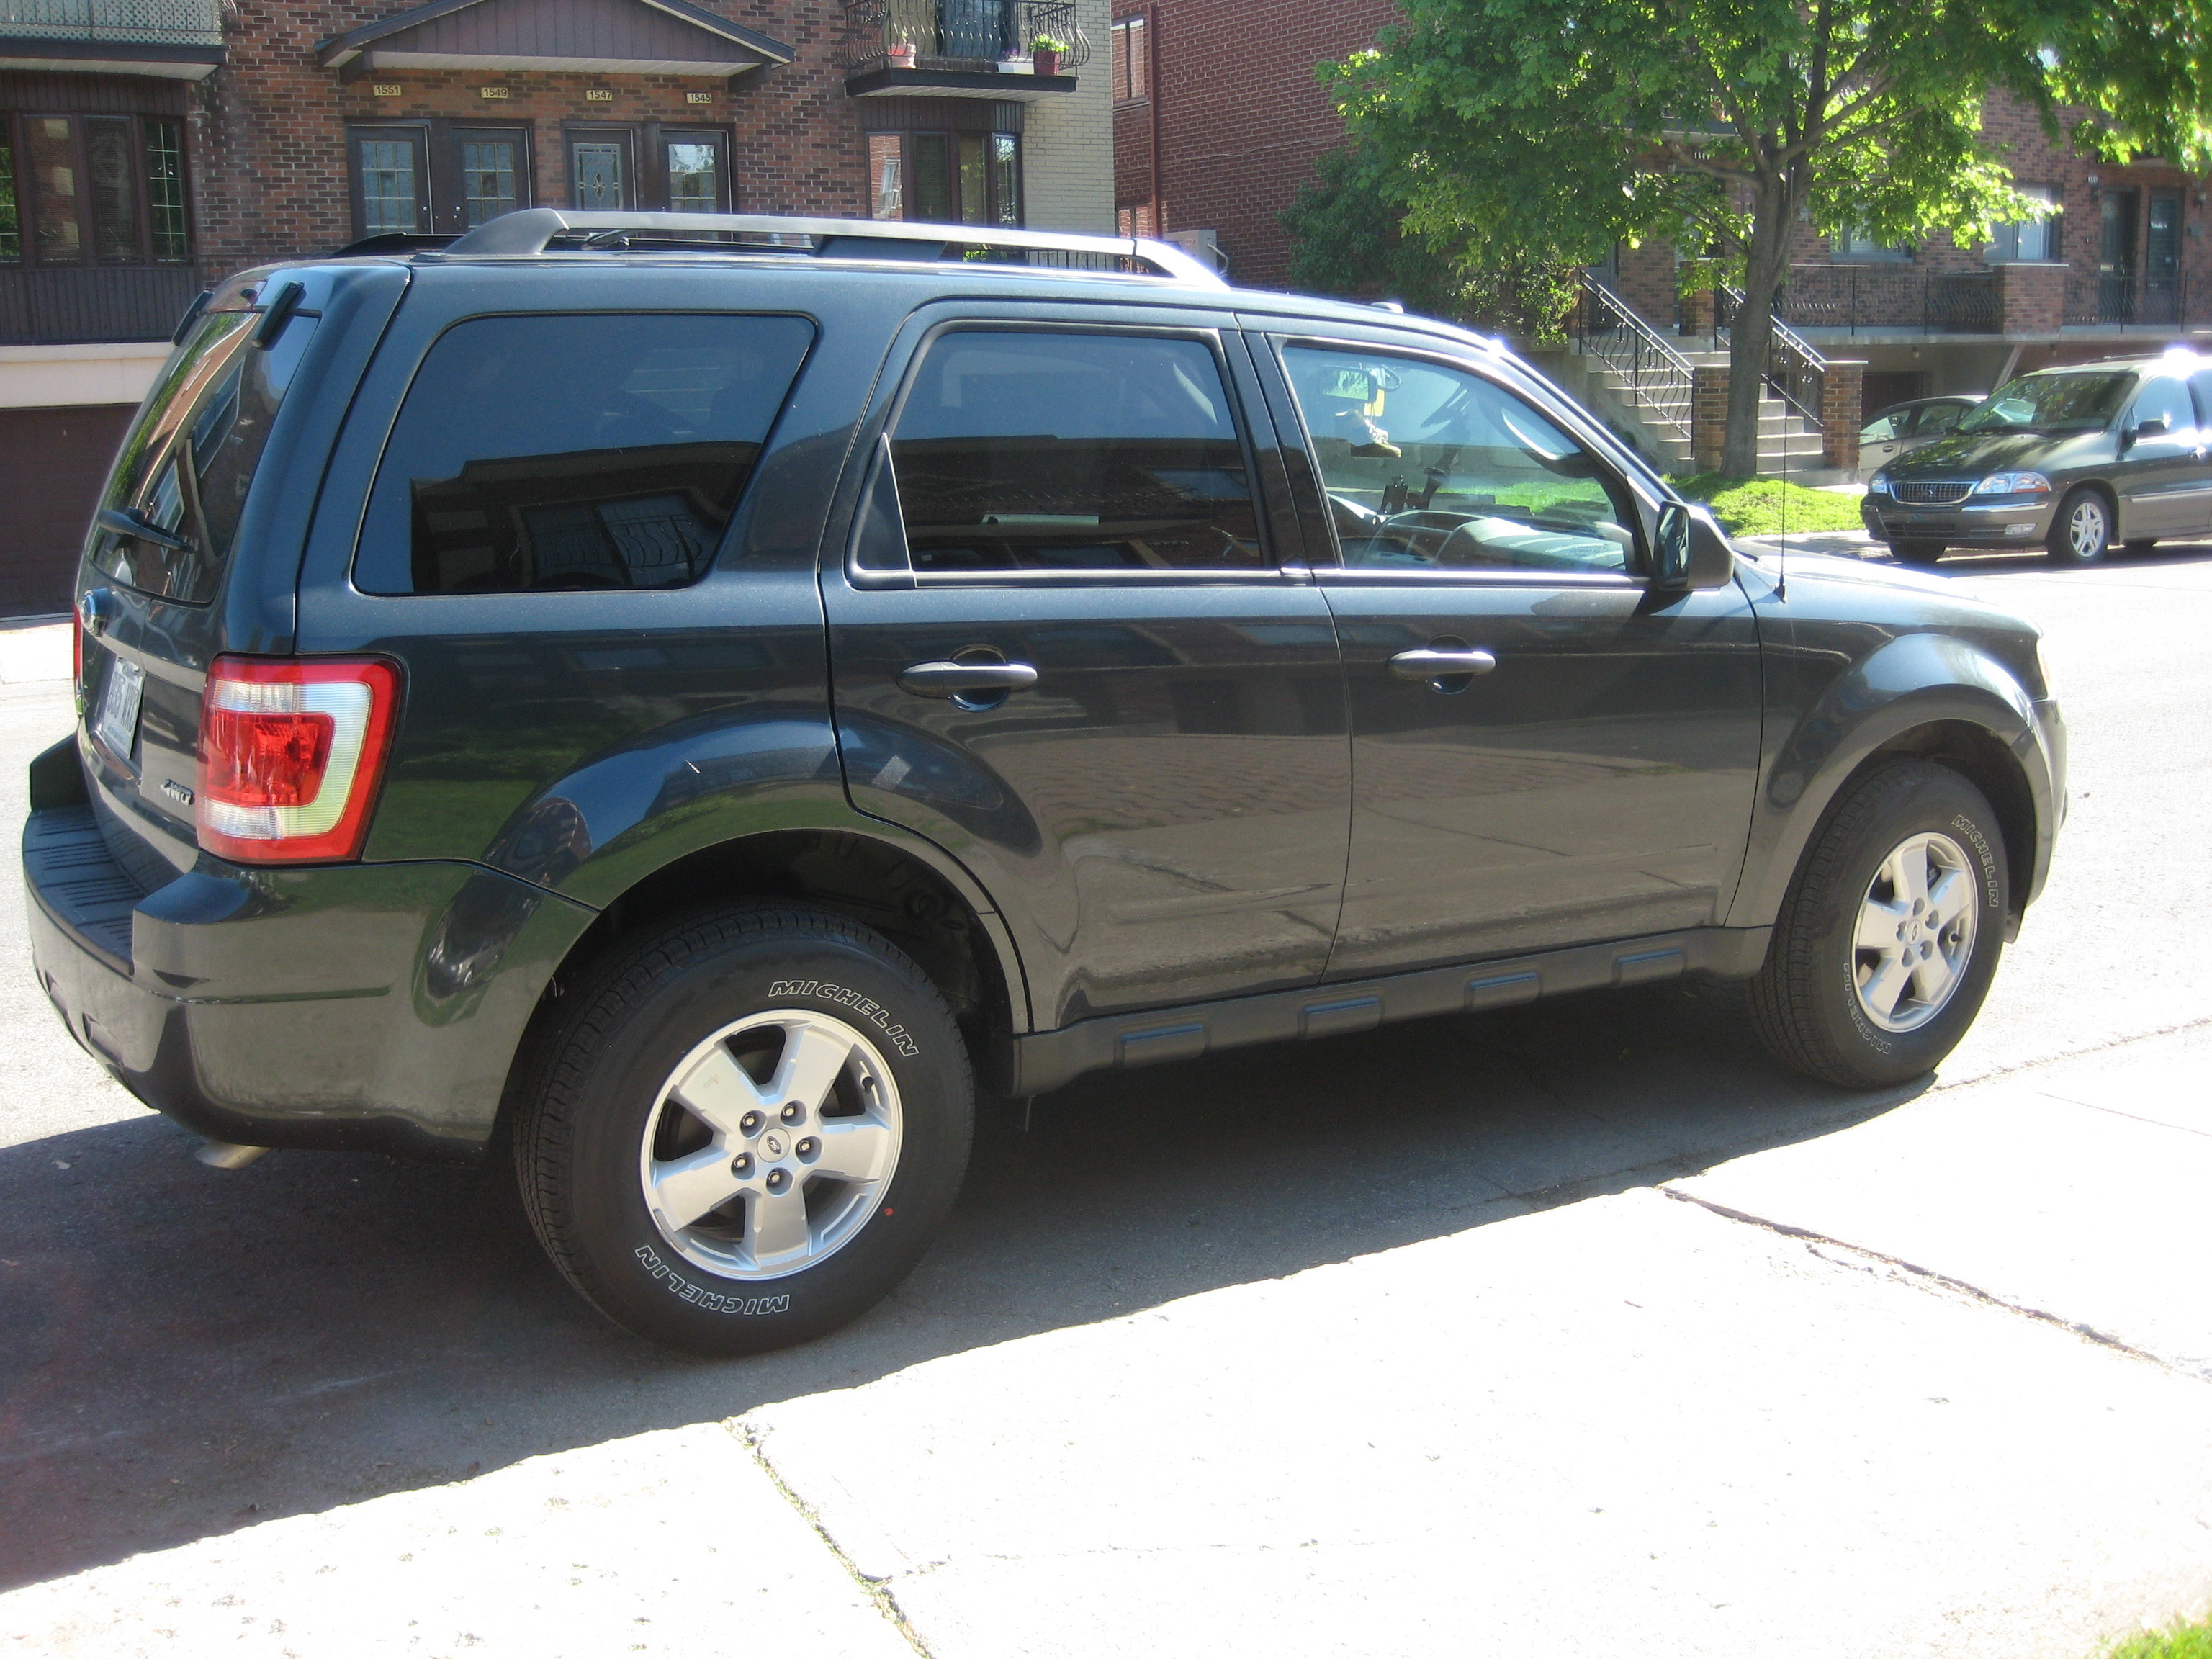 bigfoot187's 2009 Ford Escape